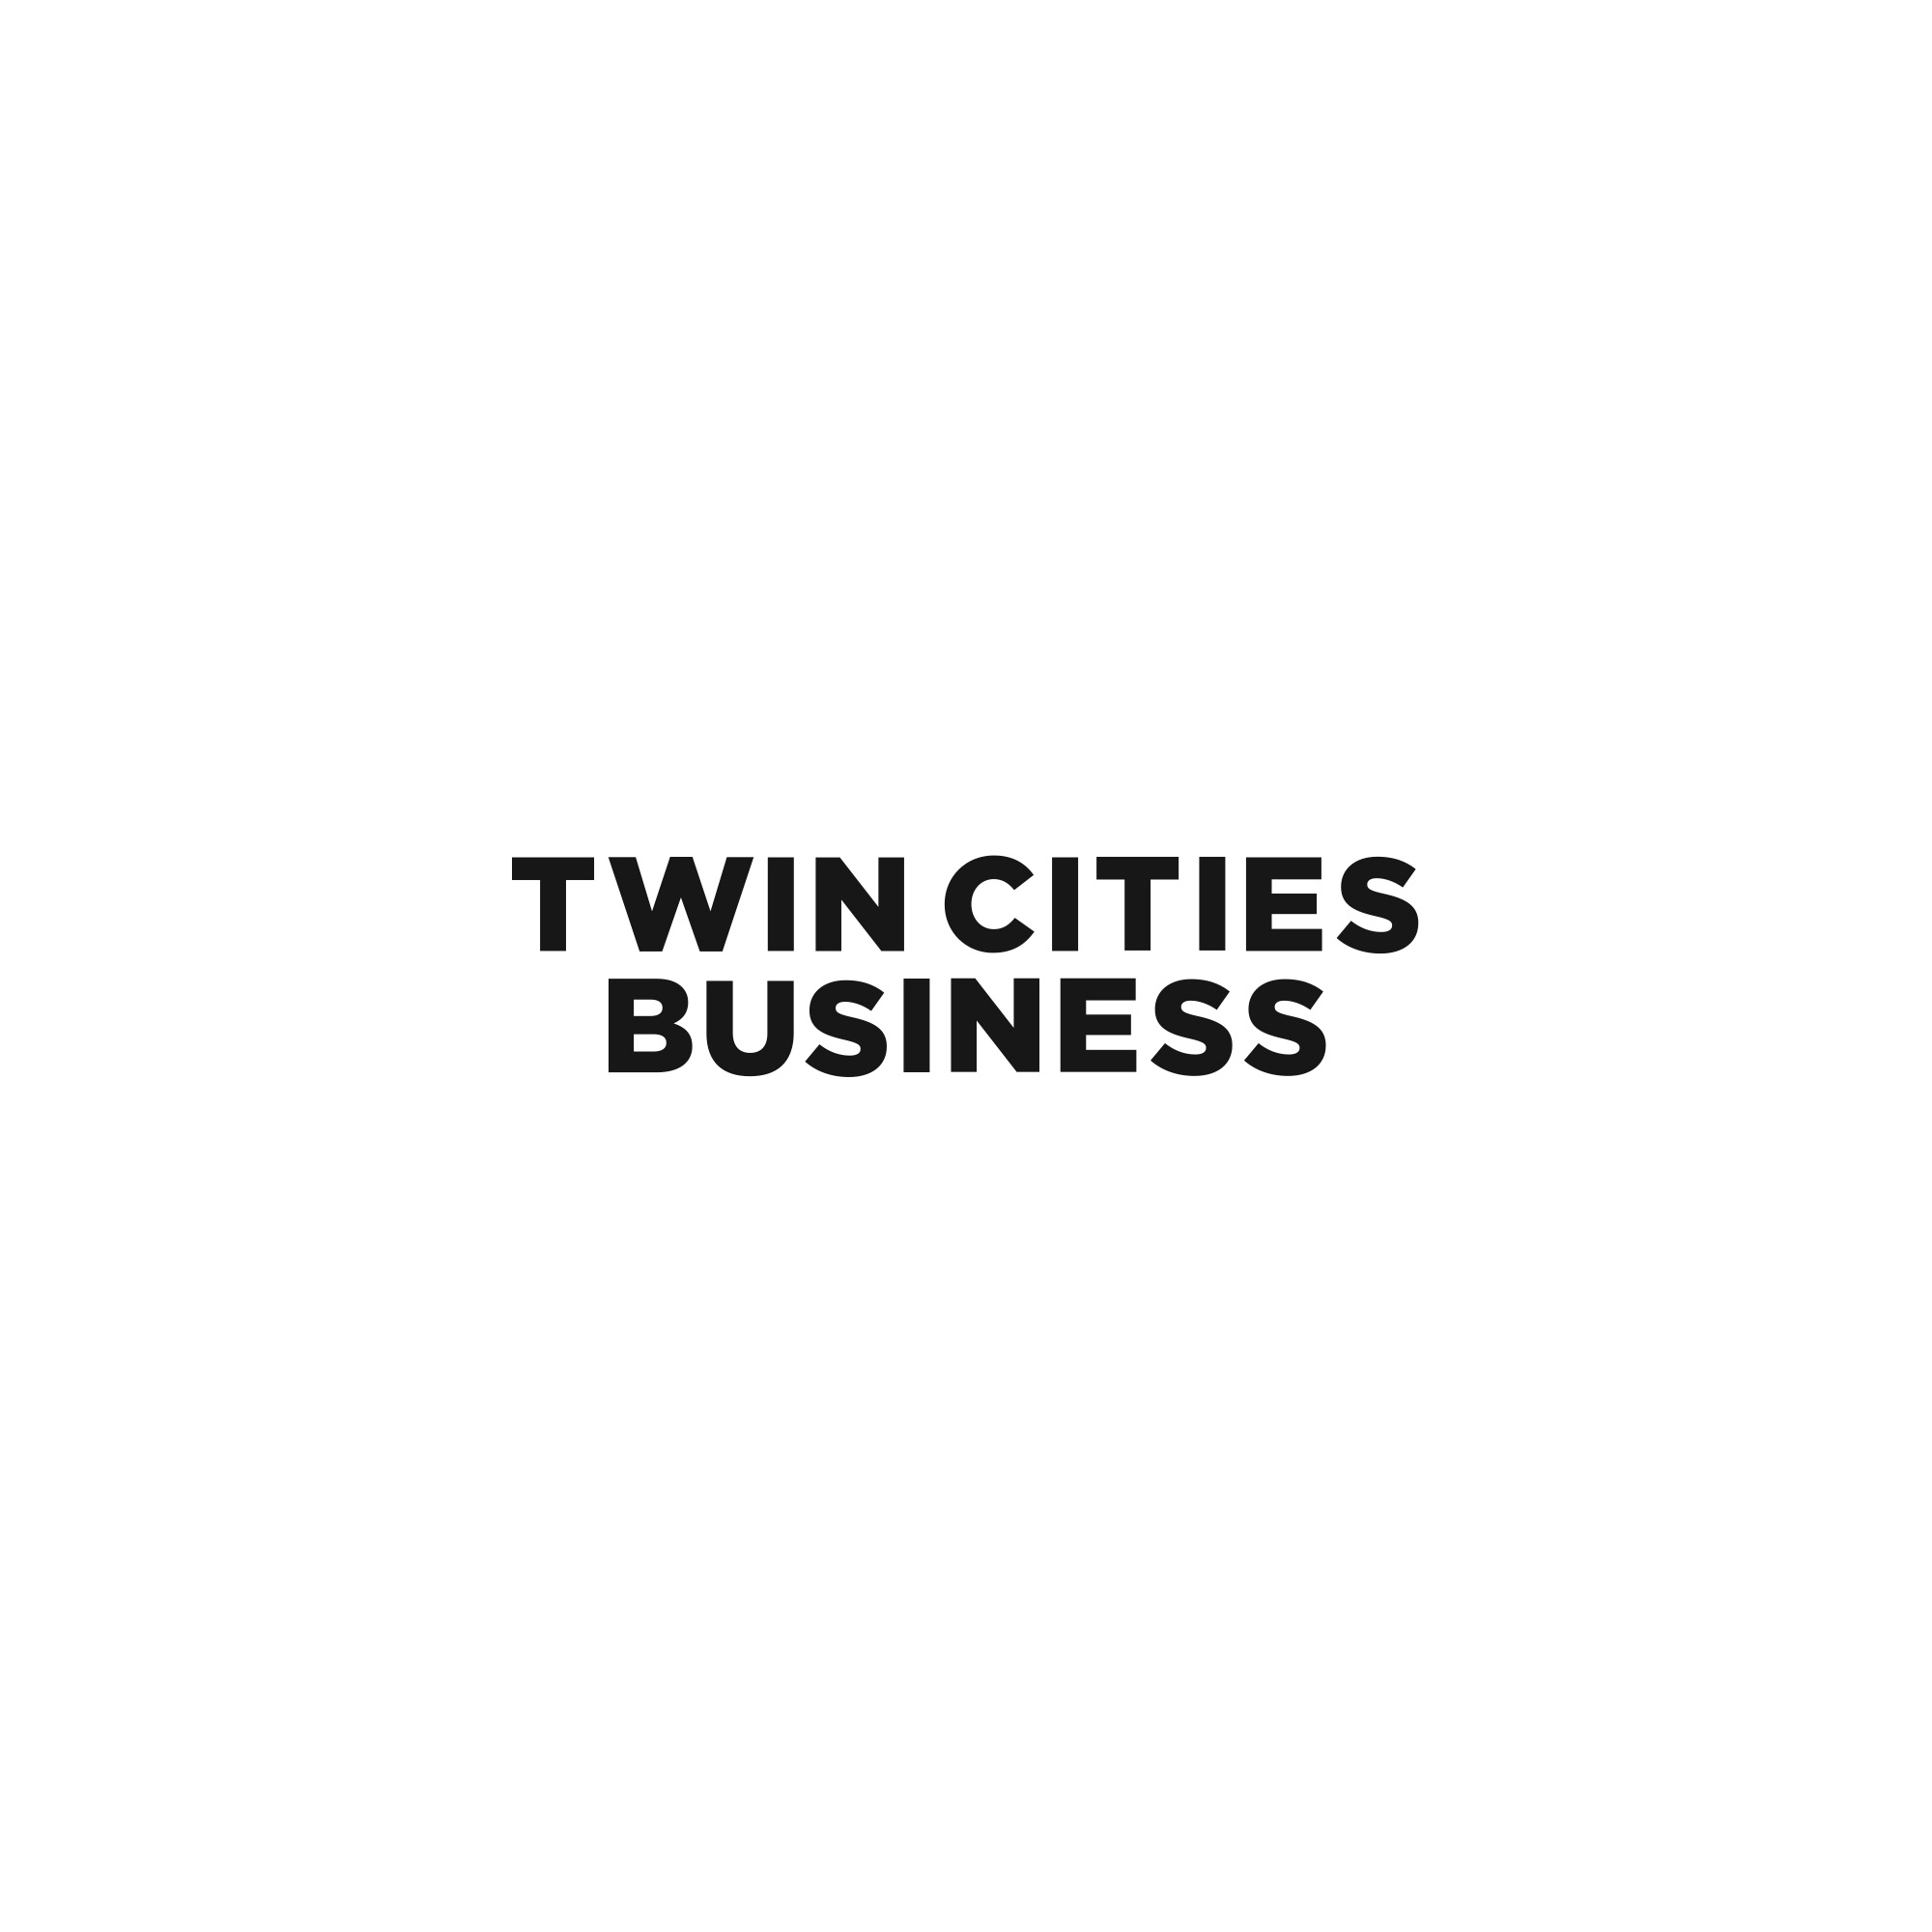 Seeking Marketing & Events Intern for Twin Cities Business